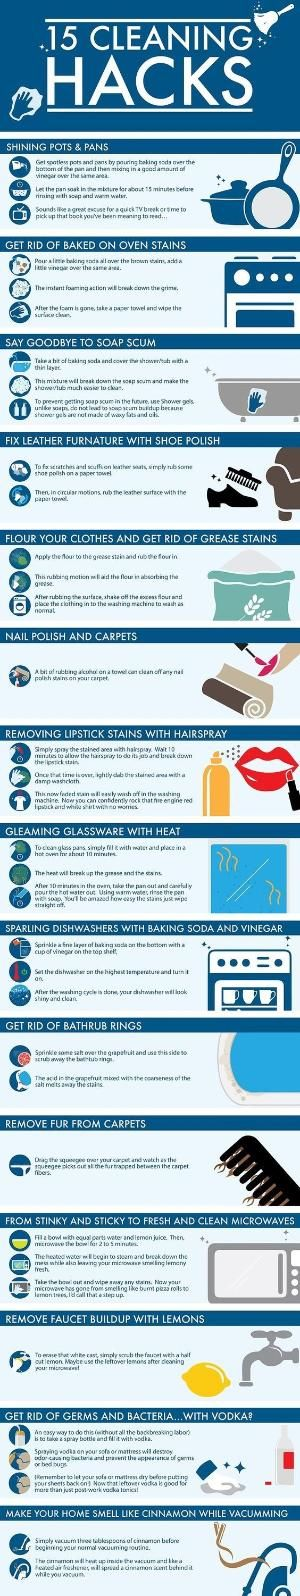 These 10 Cleaning Hacks that every girl should know are SO GOOD! I'm so glad I found this AMAZING POST! I've already gotten a stain out of my favorite dress that I NEVER thought would come out! So glad I found this! Pinning! by candy